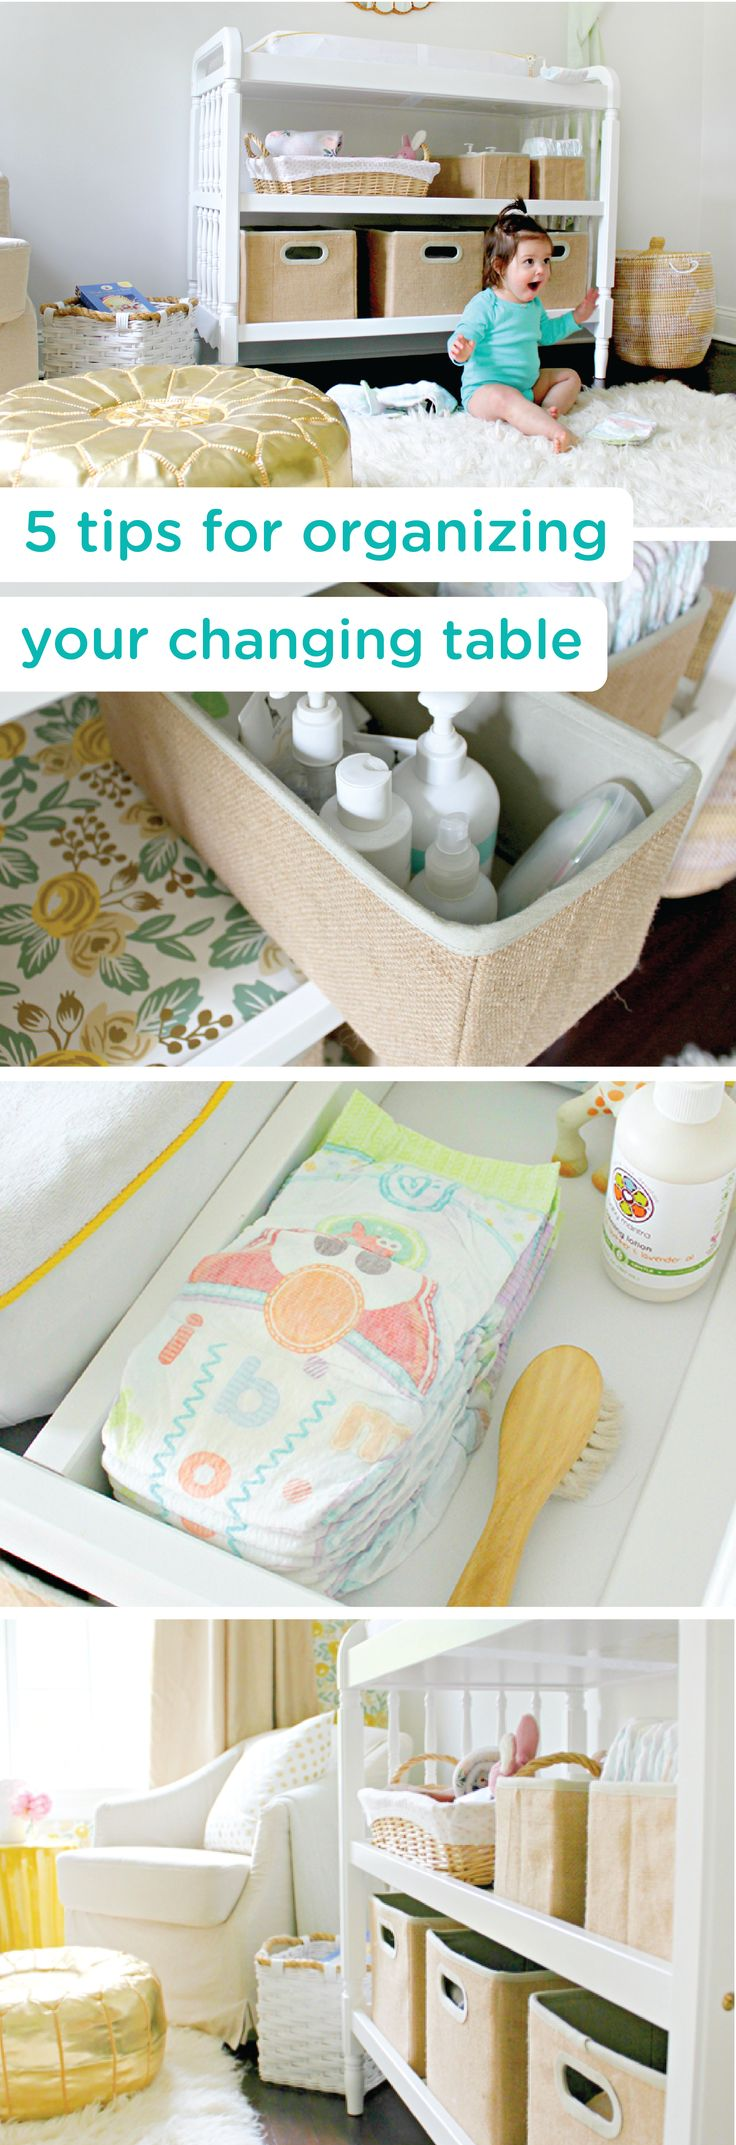 Top tips for making a baby s nursery special - Set Your Changing Table Up For Success